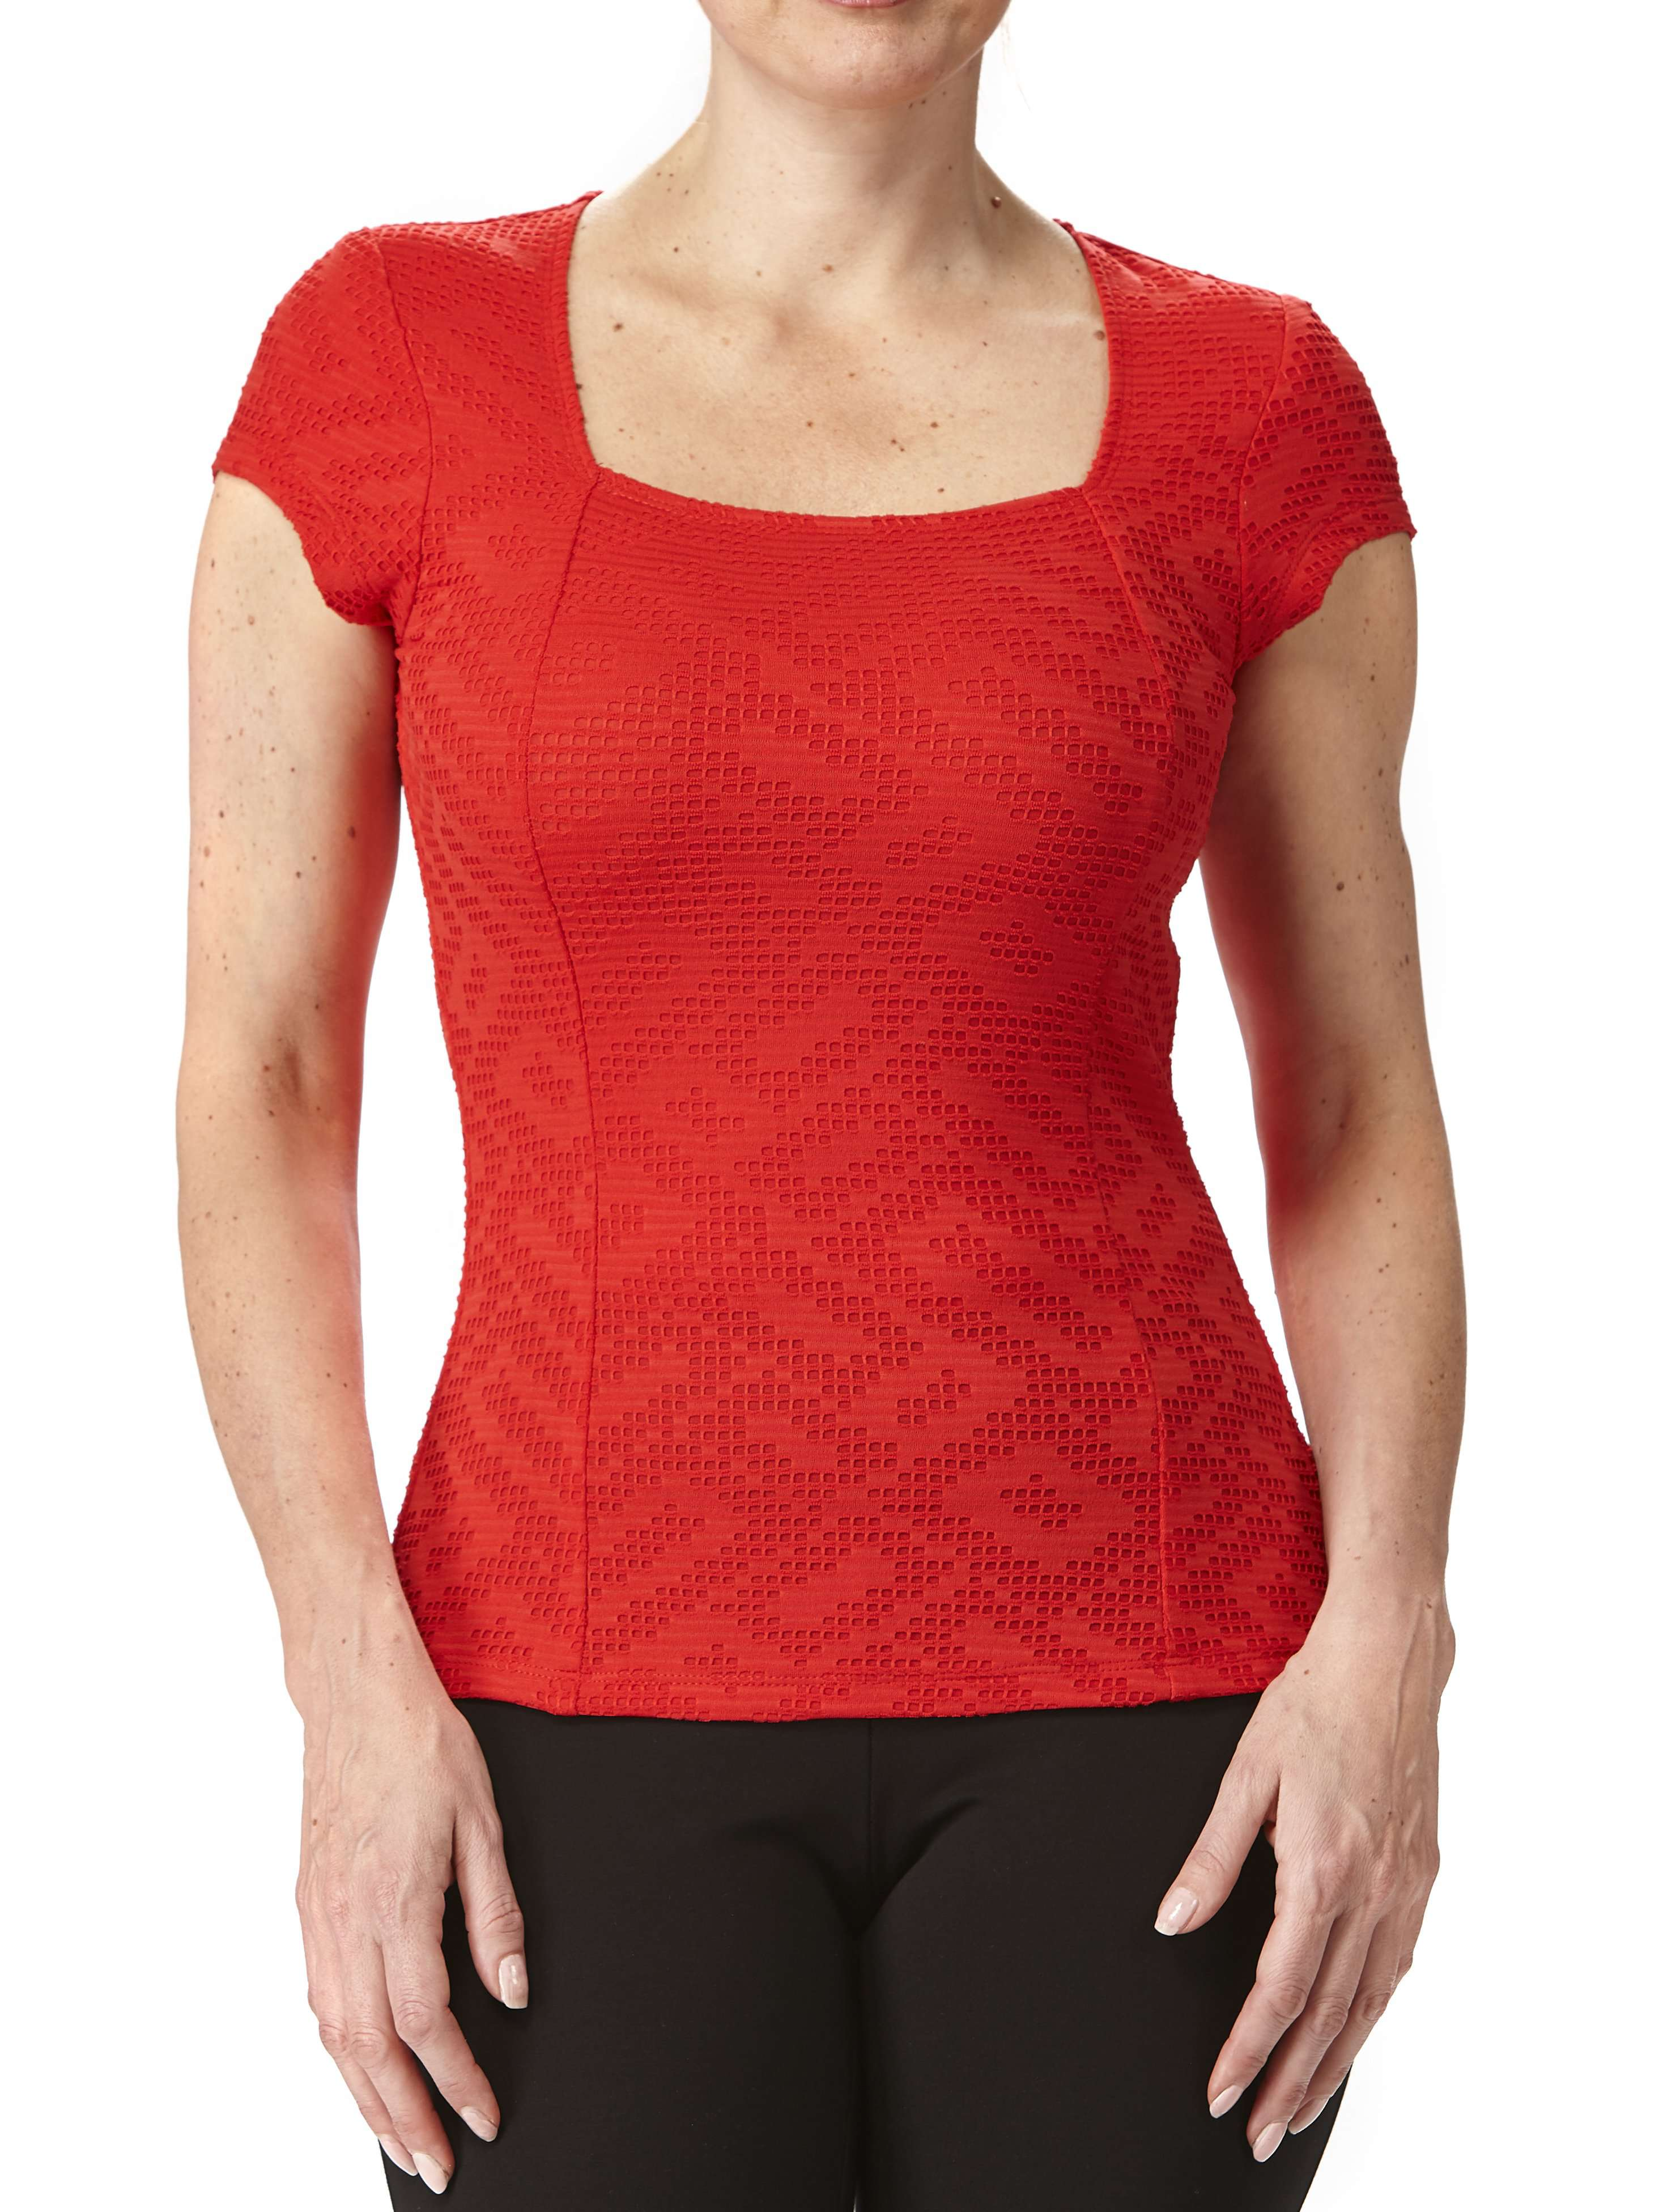 Women's Red Square Neck Top On Sale - Yvonne Marie - Yvonne Marie